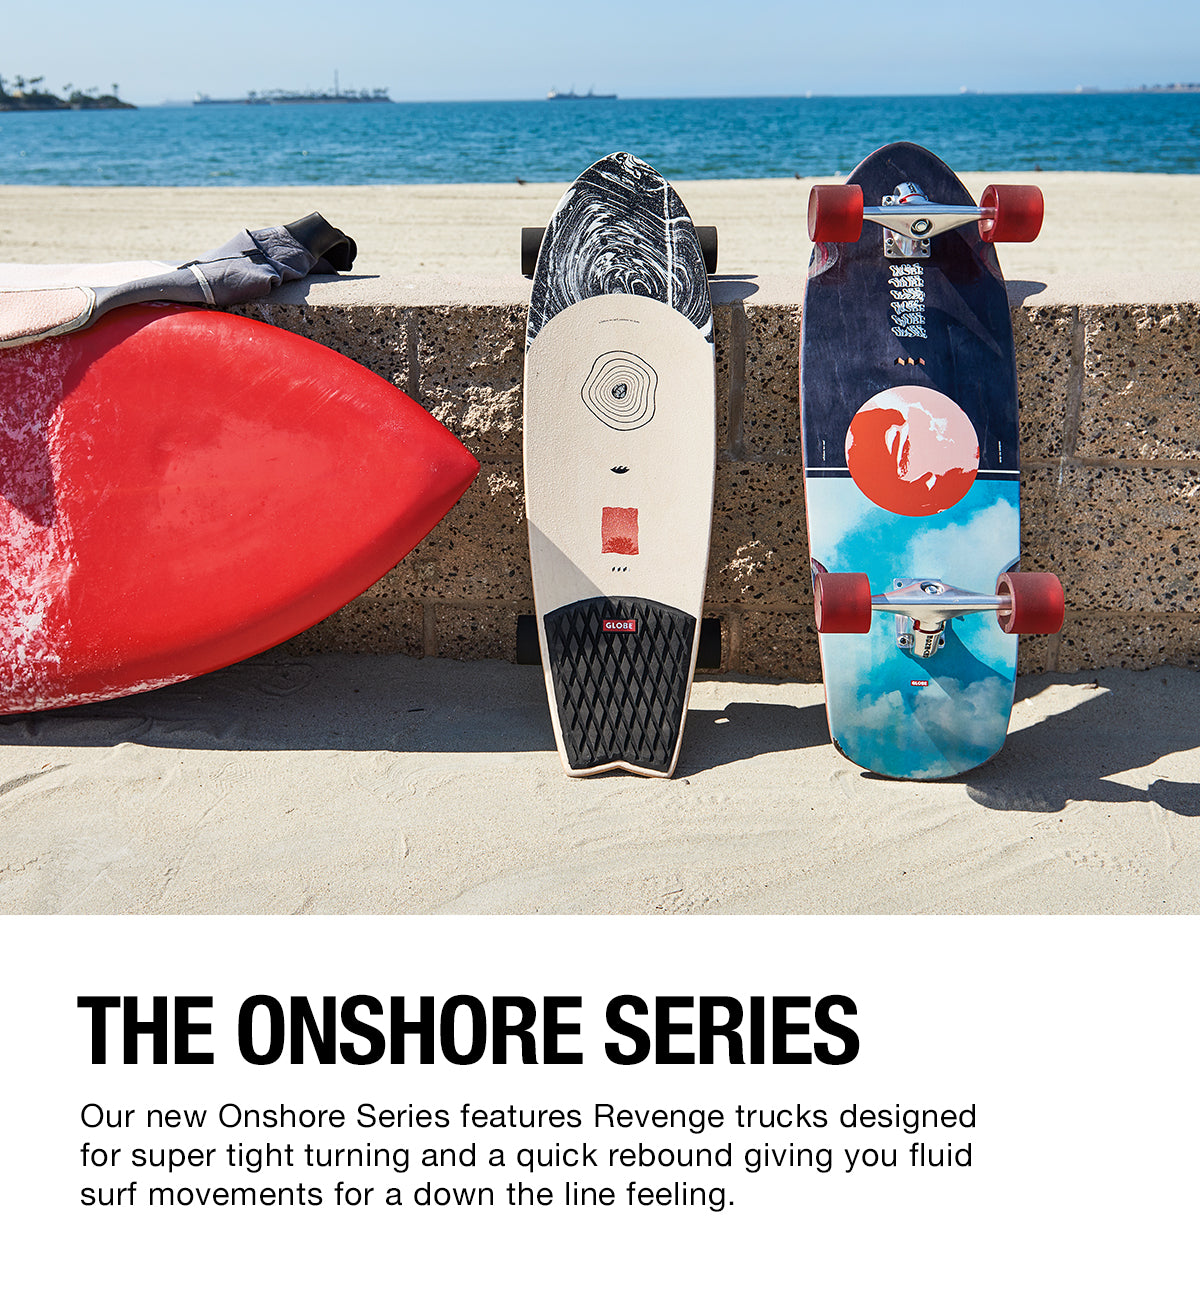 OFFSHORE WE SURF | ONSHORE WE SKATE: Developed and designed to offer an enhanced surf-like experience, The Onshore series features Revenge trucks allowing for a greater range of motion while maintaining enough stability to push like a normal cruiser.  The patented design of the Revenge Alpha II 175mm torsion trucks produces a super-tight turning radius and a super-quick rebound giving you a fluid 'down the line' pump feel and on-dime hacks. They ride lower to the ground are easier to push that most surf/skate trucks, featuring a locking mechanism that eliminates wheel bite.